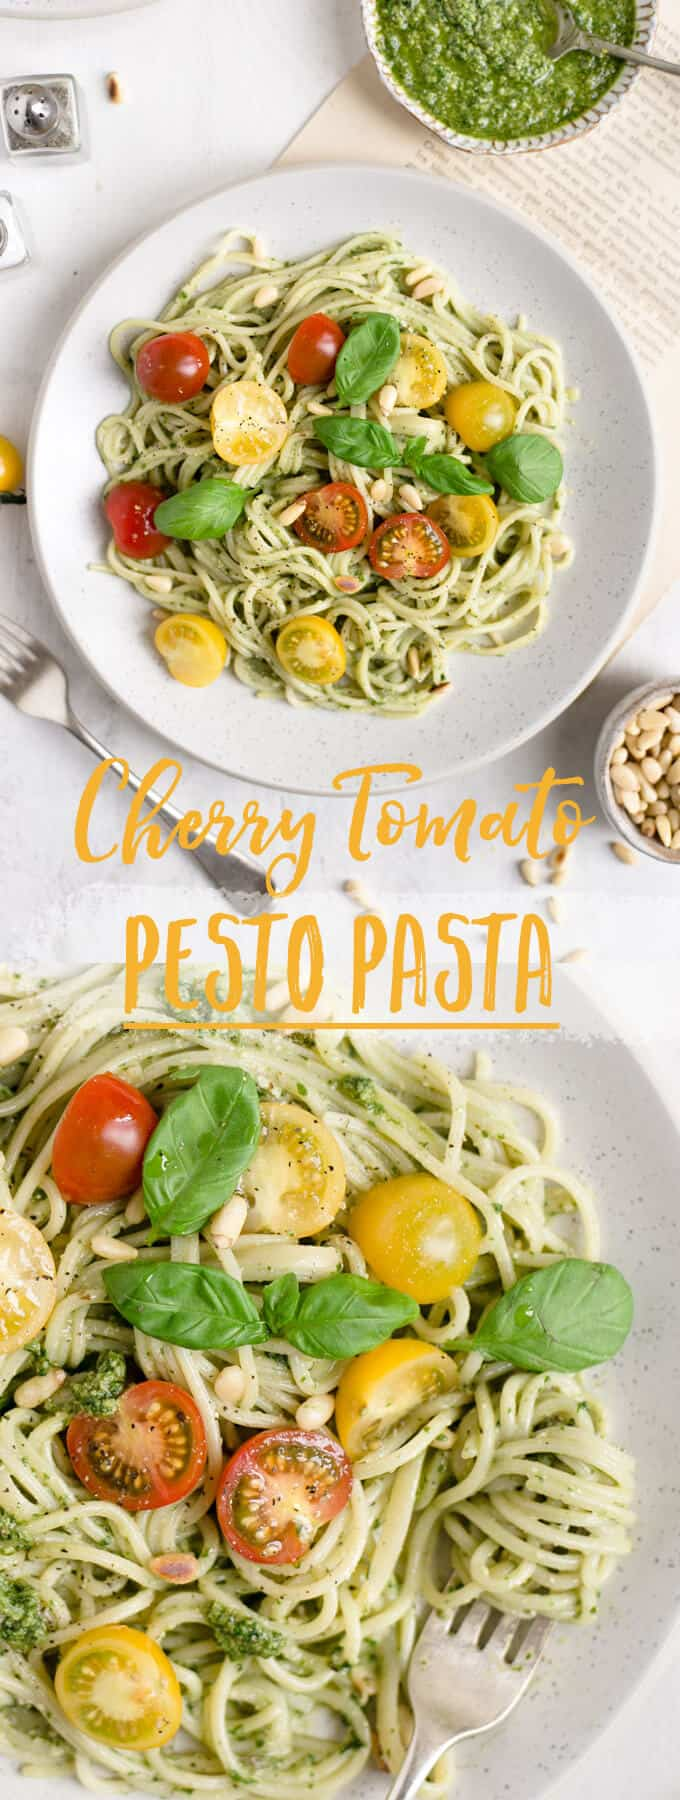 Pesto pasta with cherry tomatoes. Quick and easy idea for lunch or dinner, ready in 15 minutes! #veganrecipe #healthyrecipe #pasta | via @annabanana.co